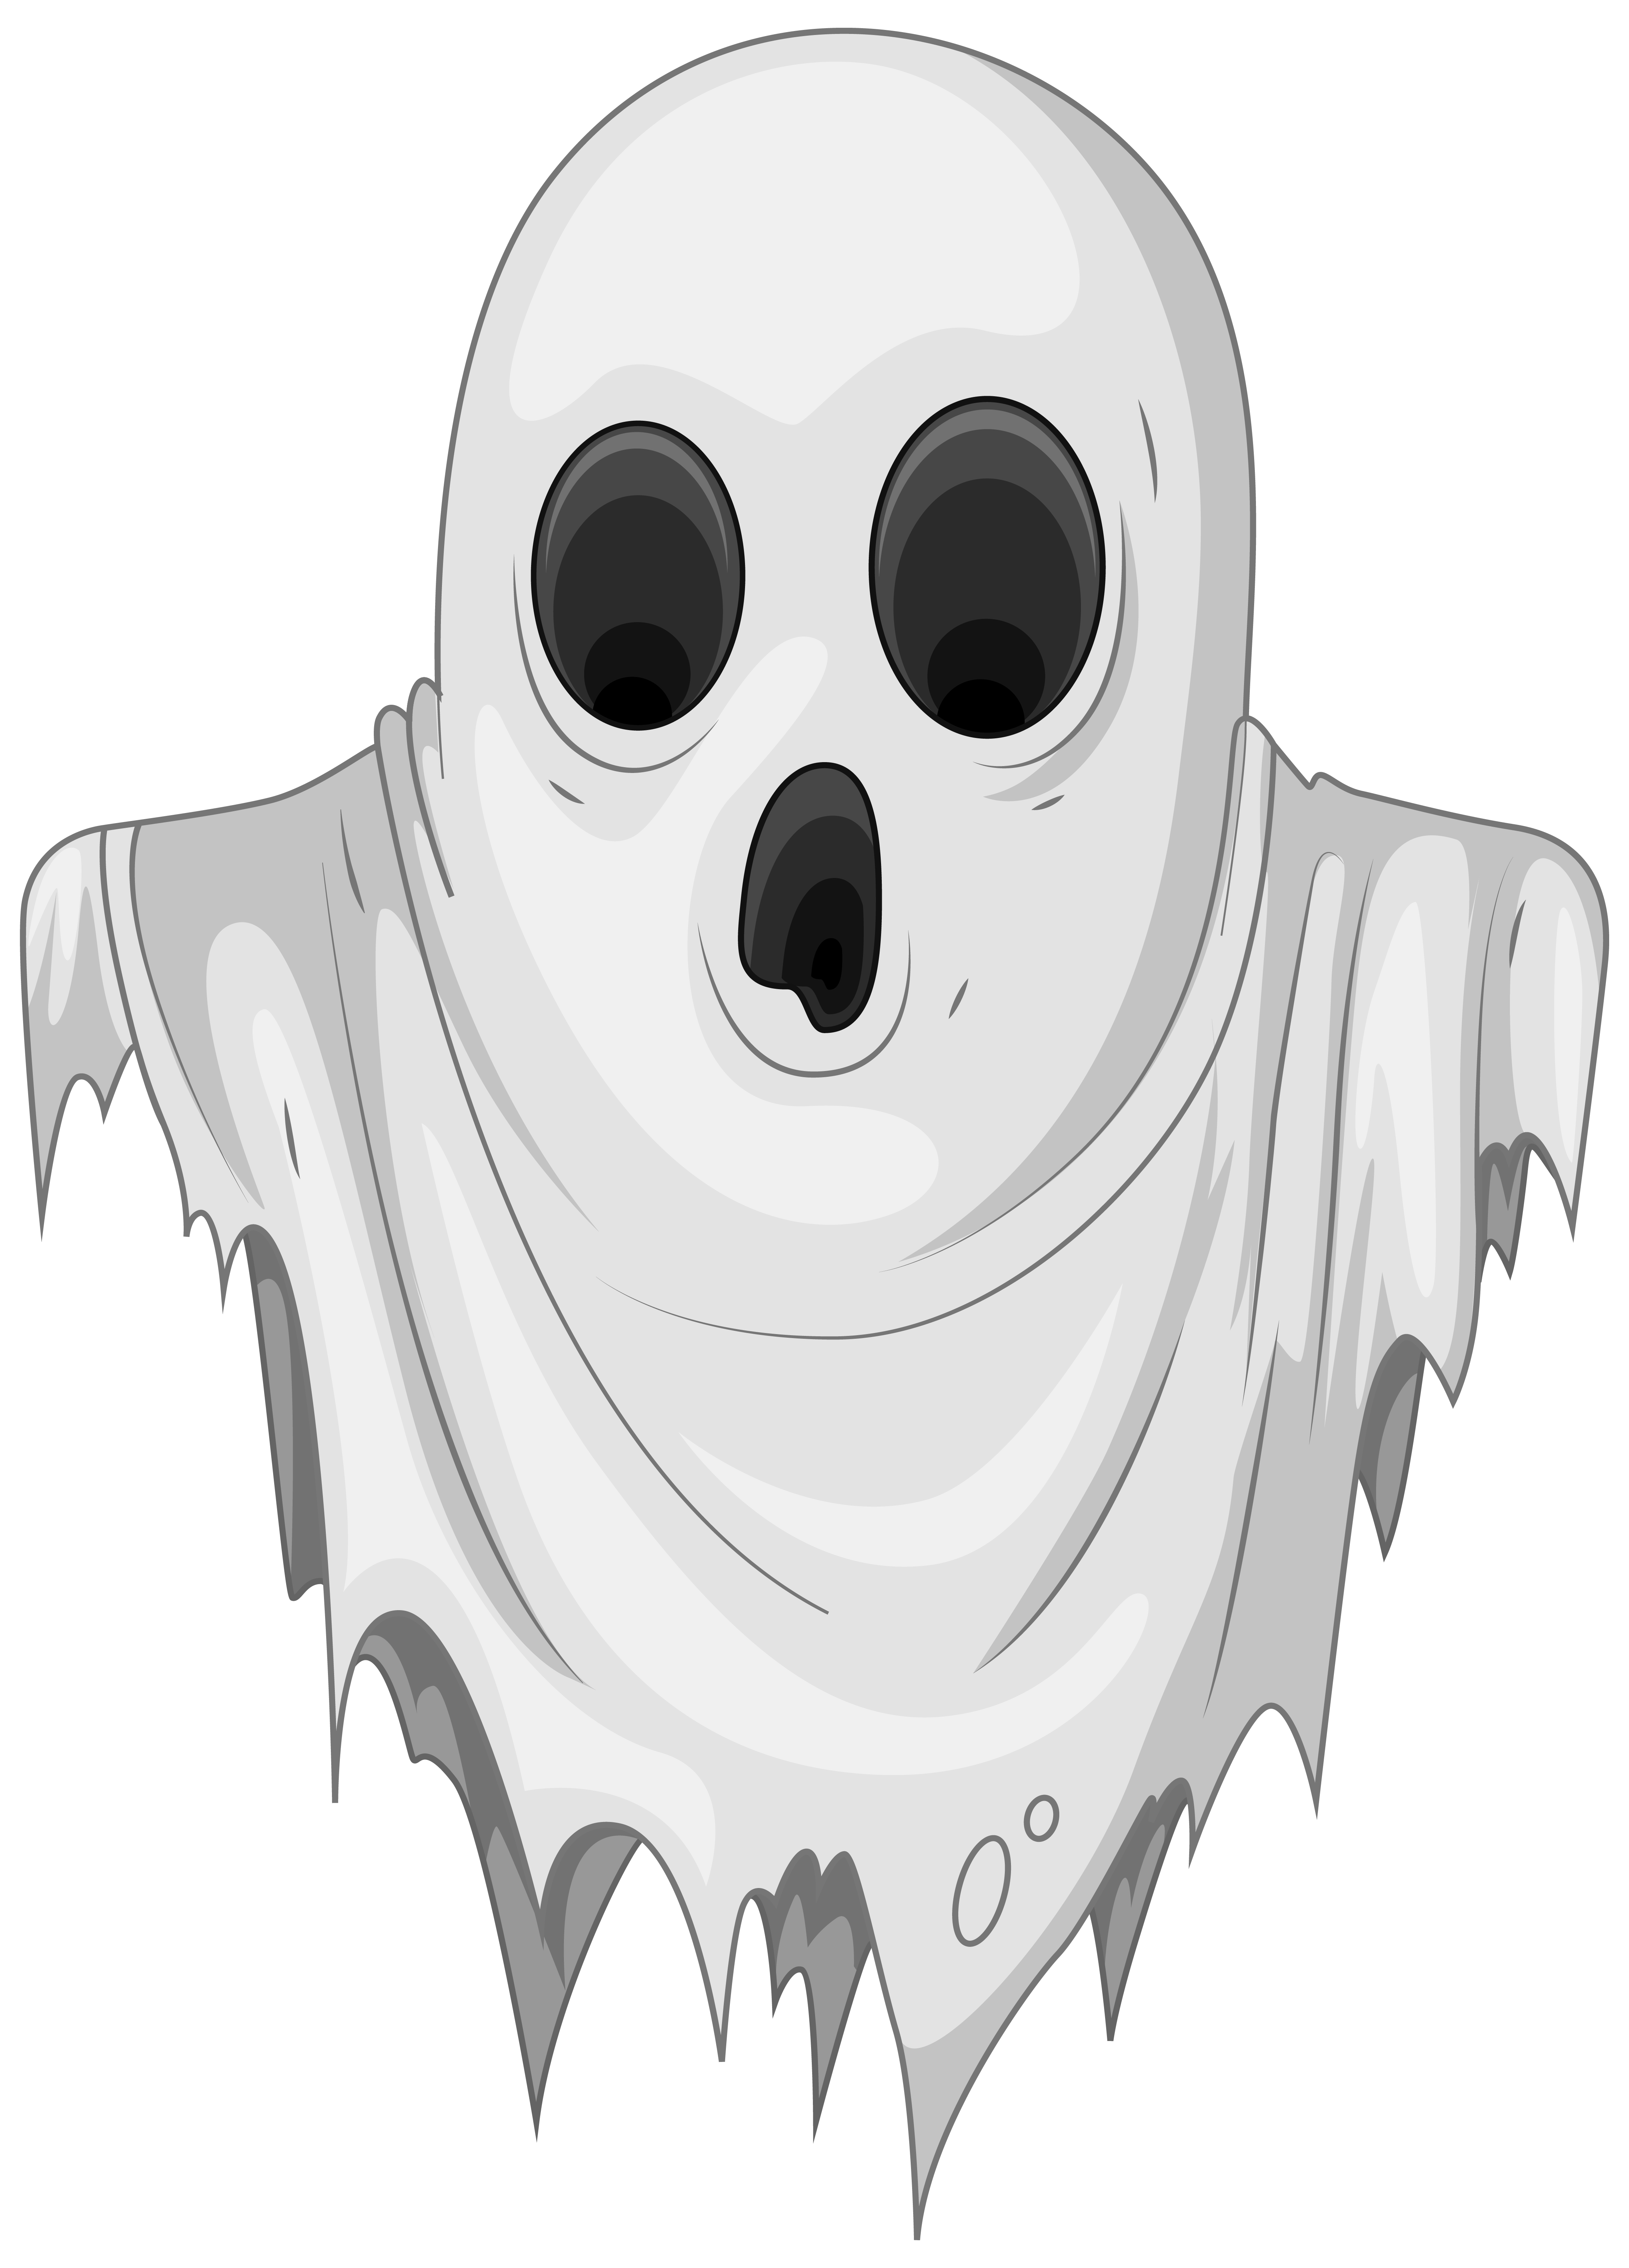 Ghost clipart realistic. Computer icons clip art